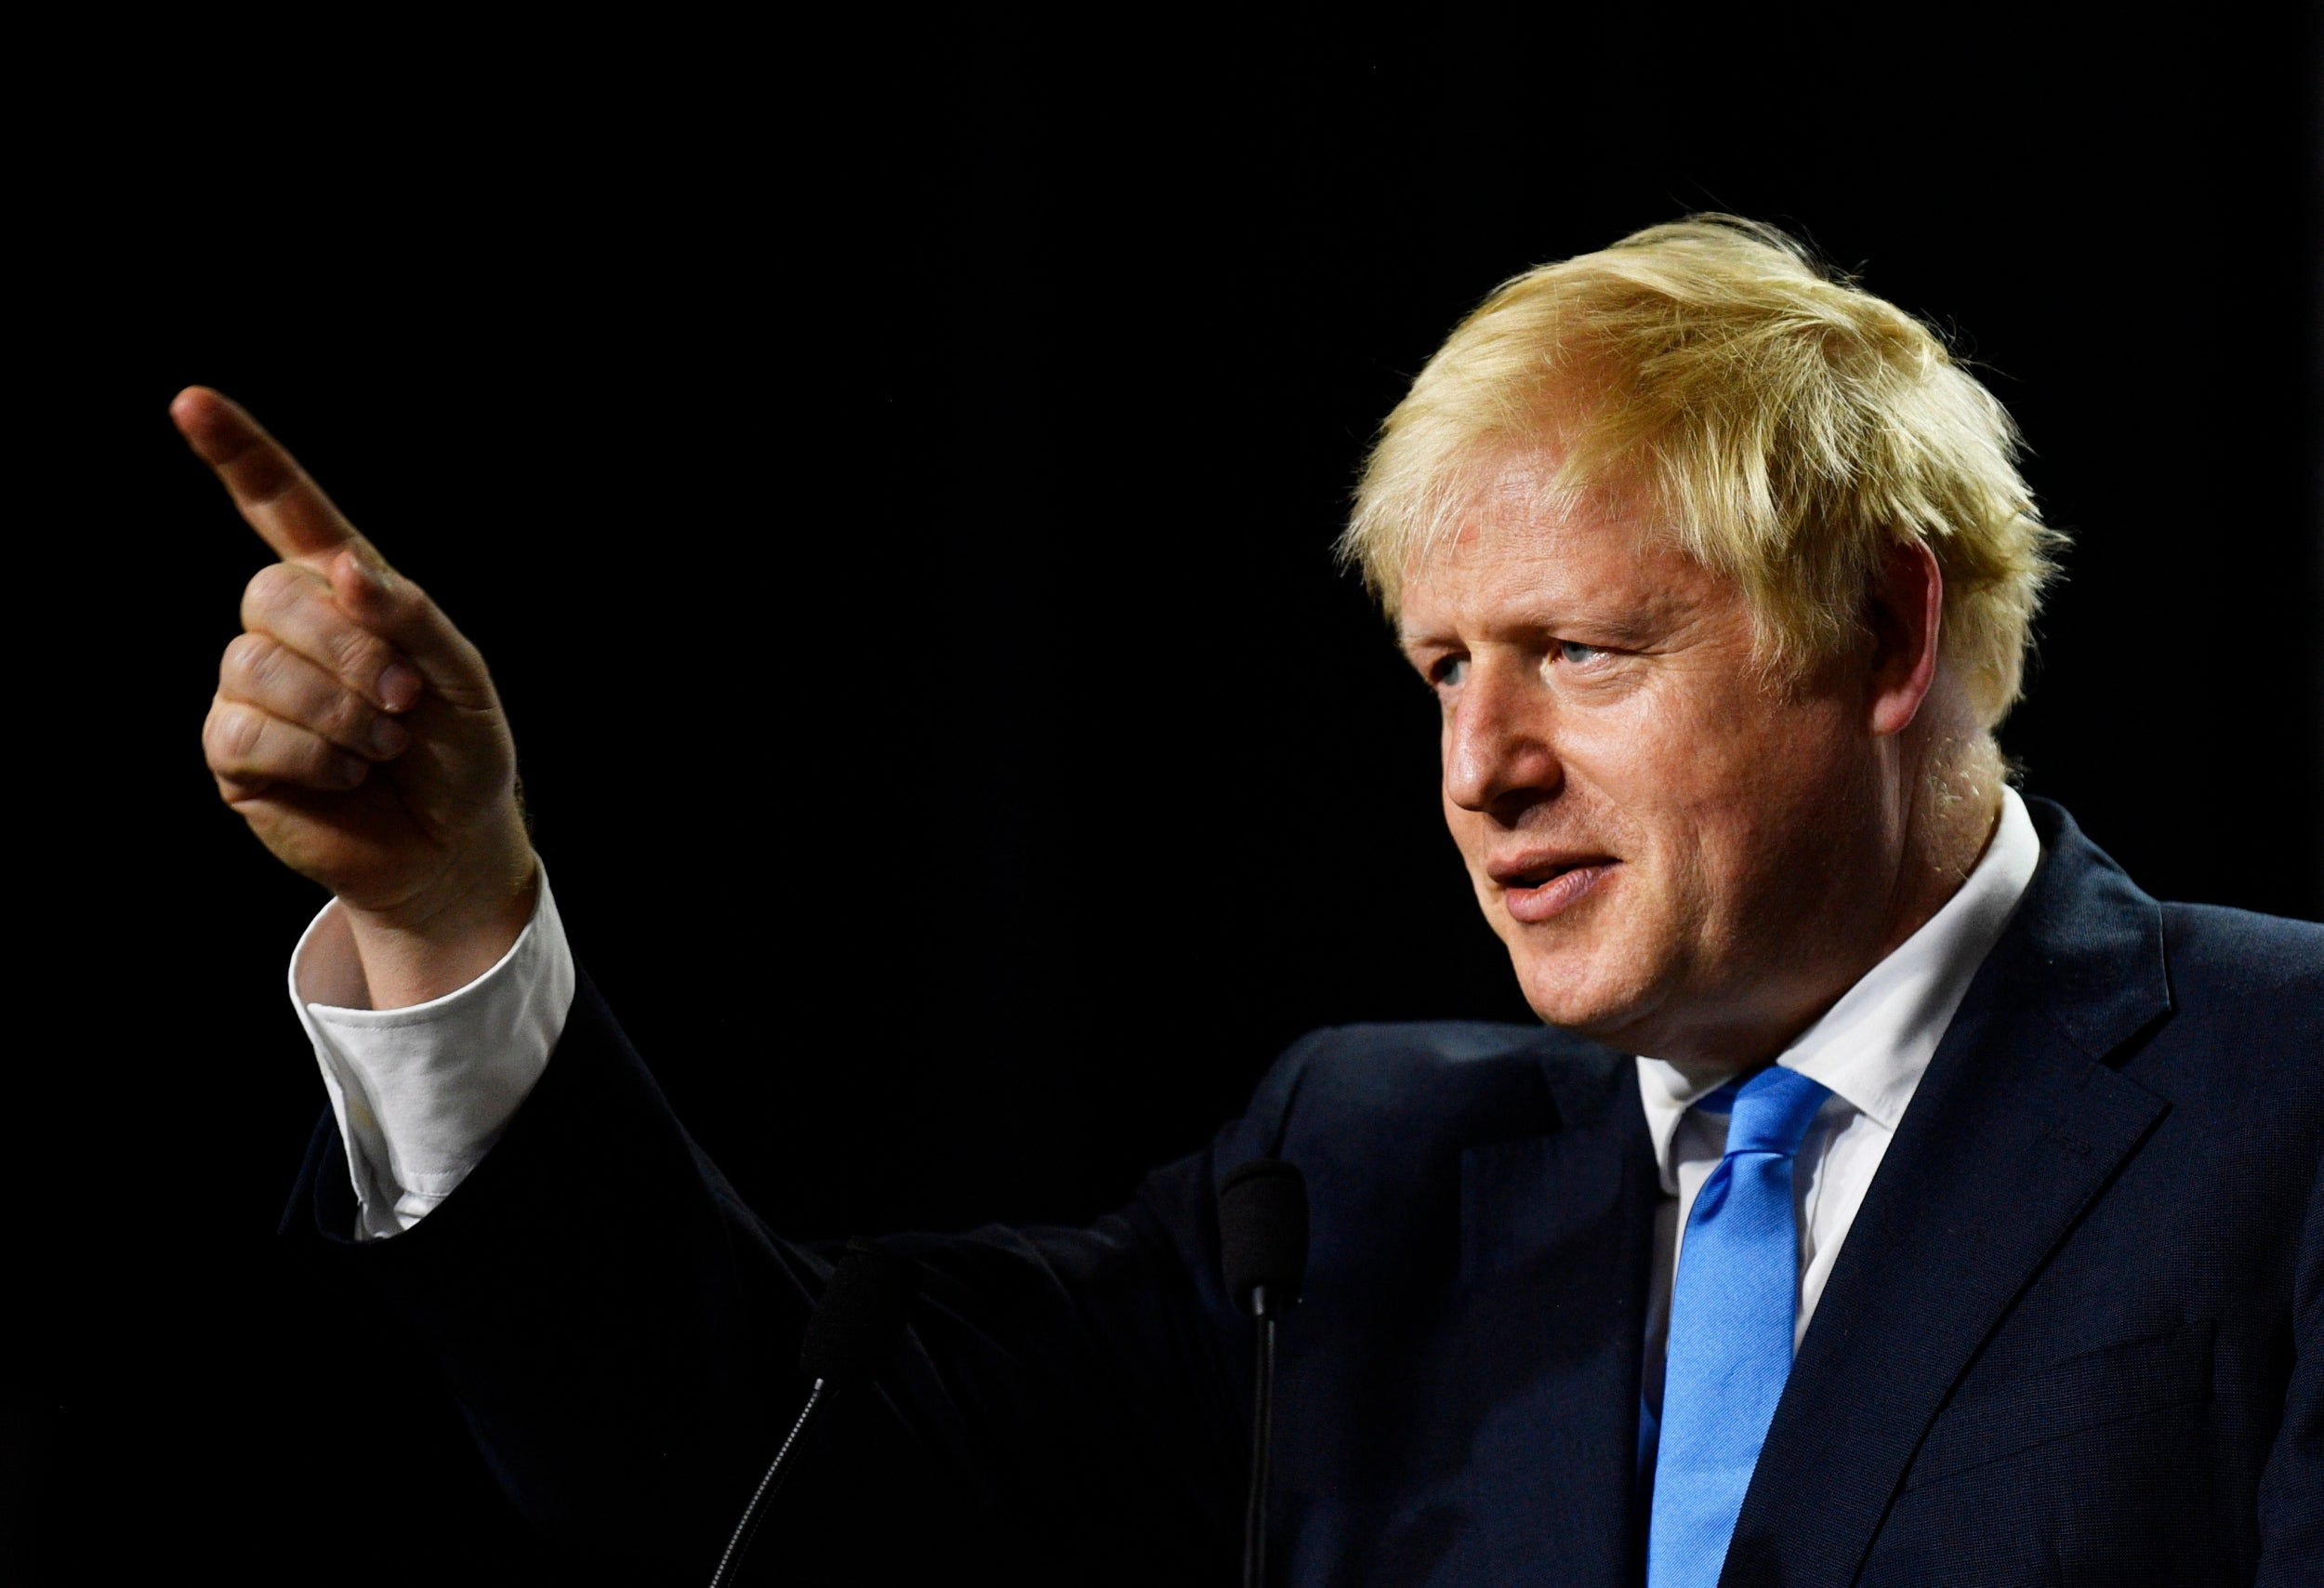 Did you really expect Boris Johnson to say, 'Yes, I lied to the Queen'?